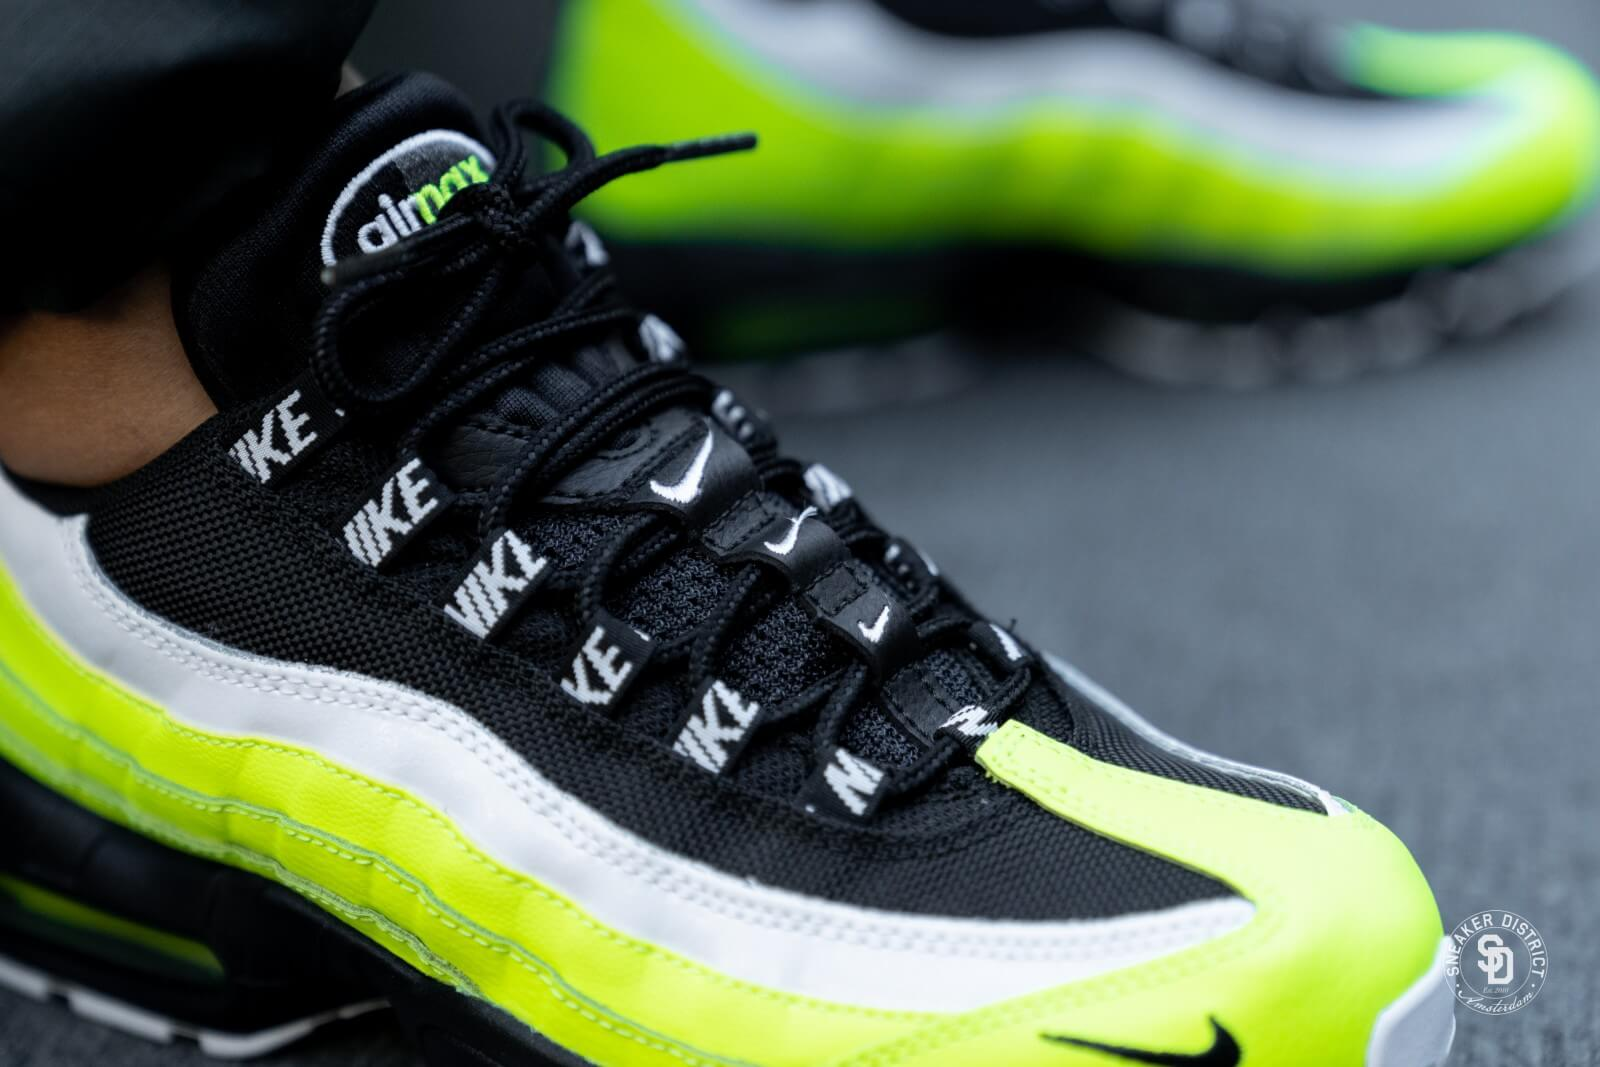 Nike Air Max 95 PRM GS Nike Air Max 95 Black Volt Green Battery 1989 Nike Shoes Gray And ...